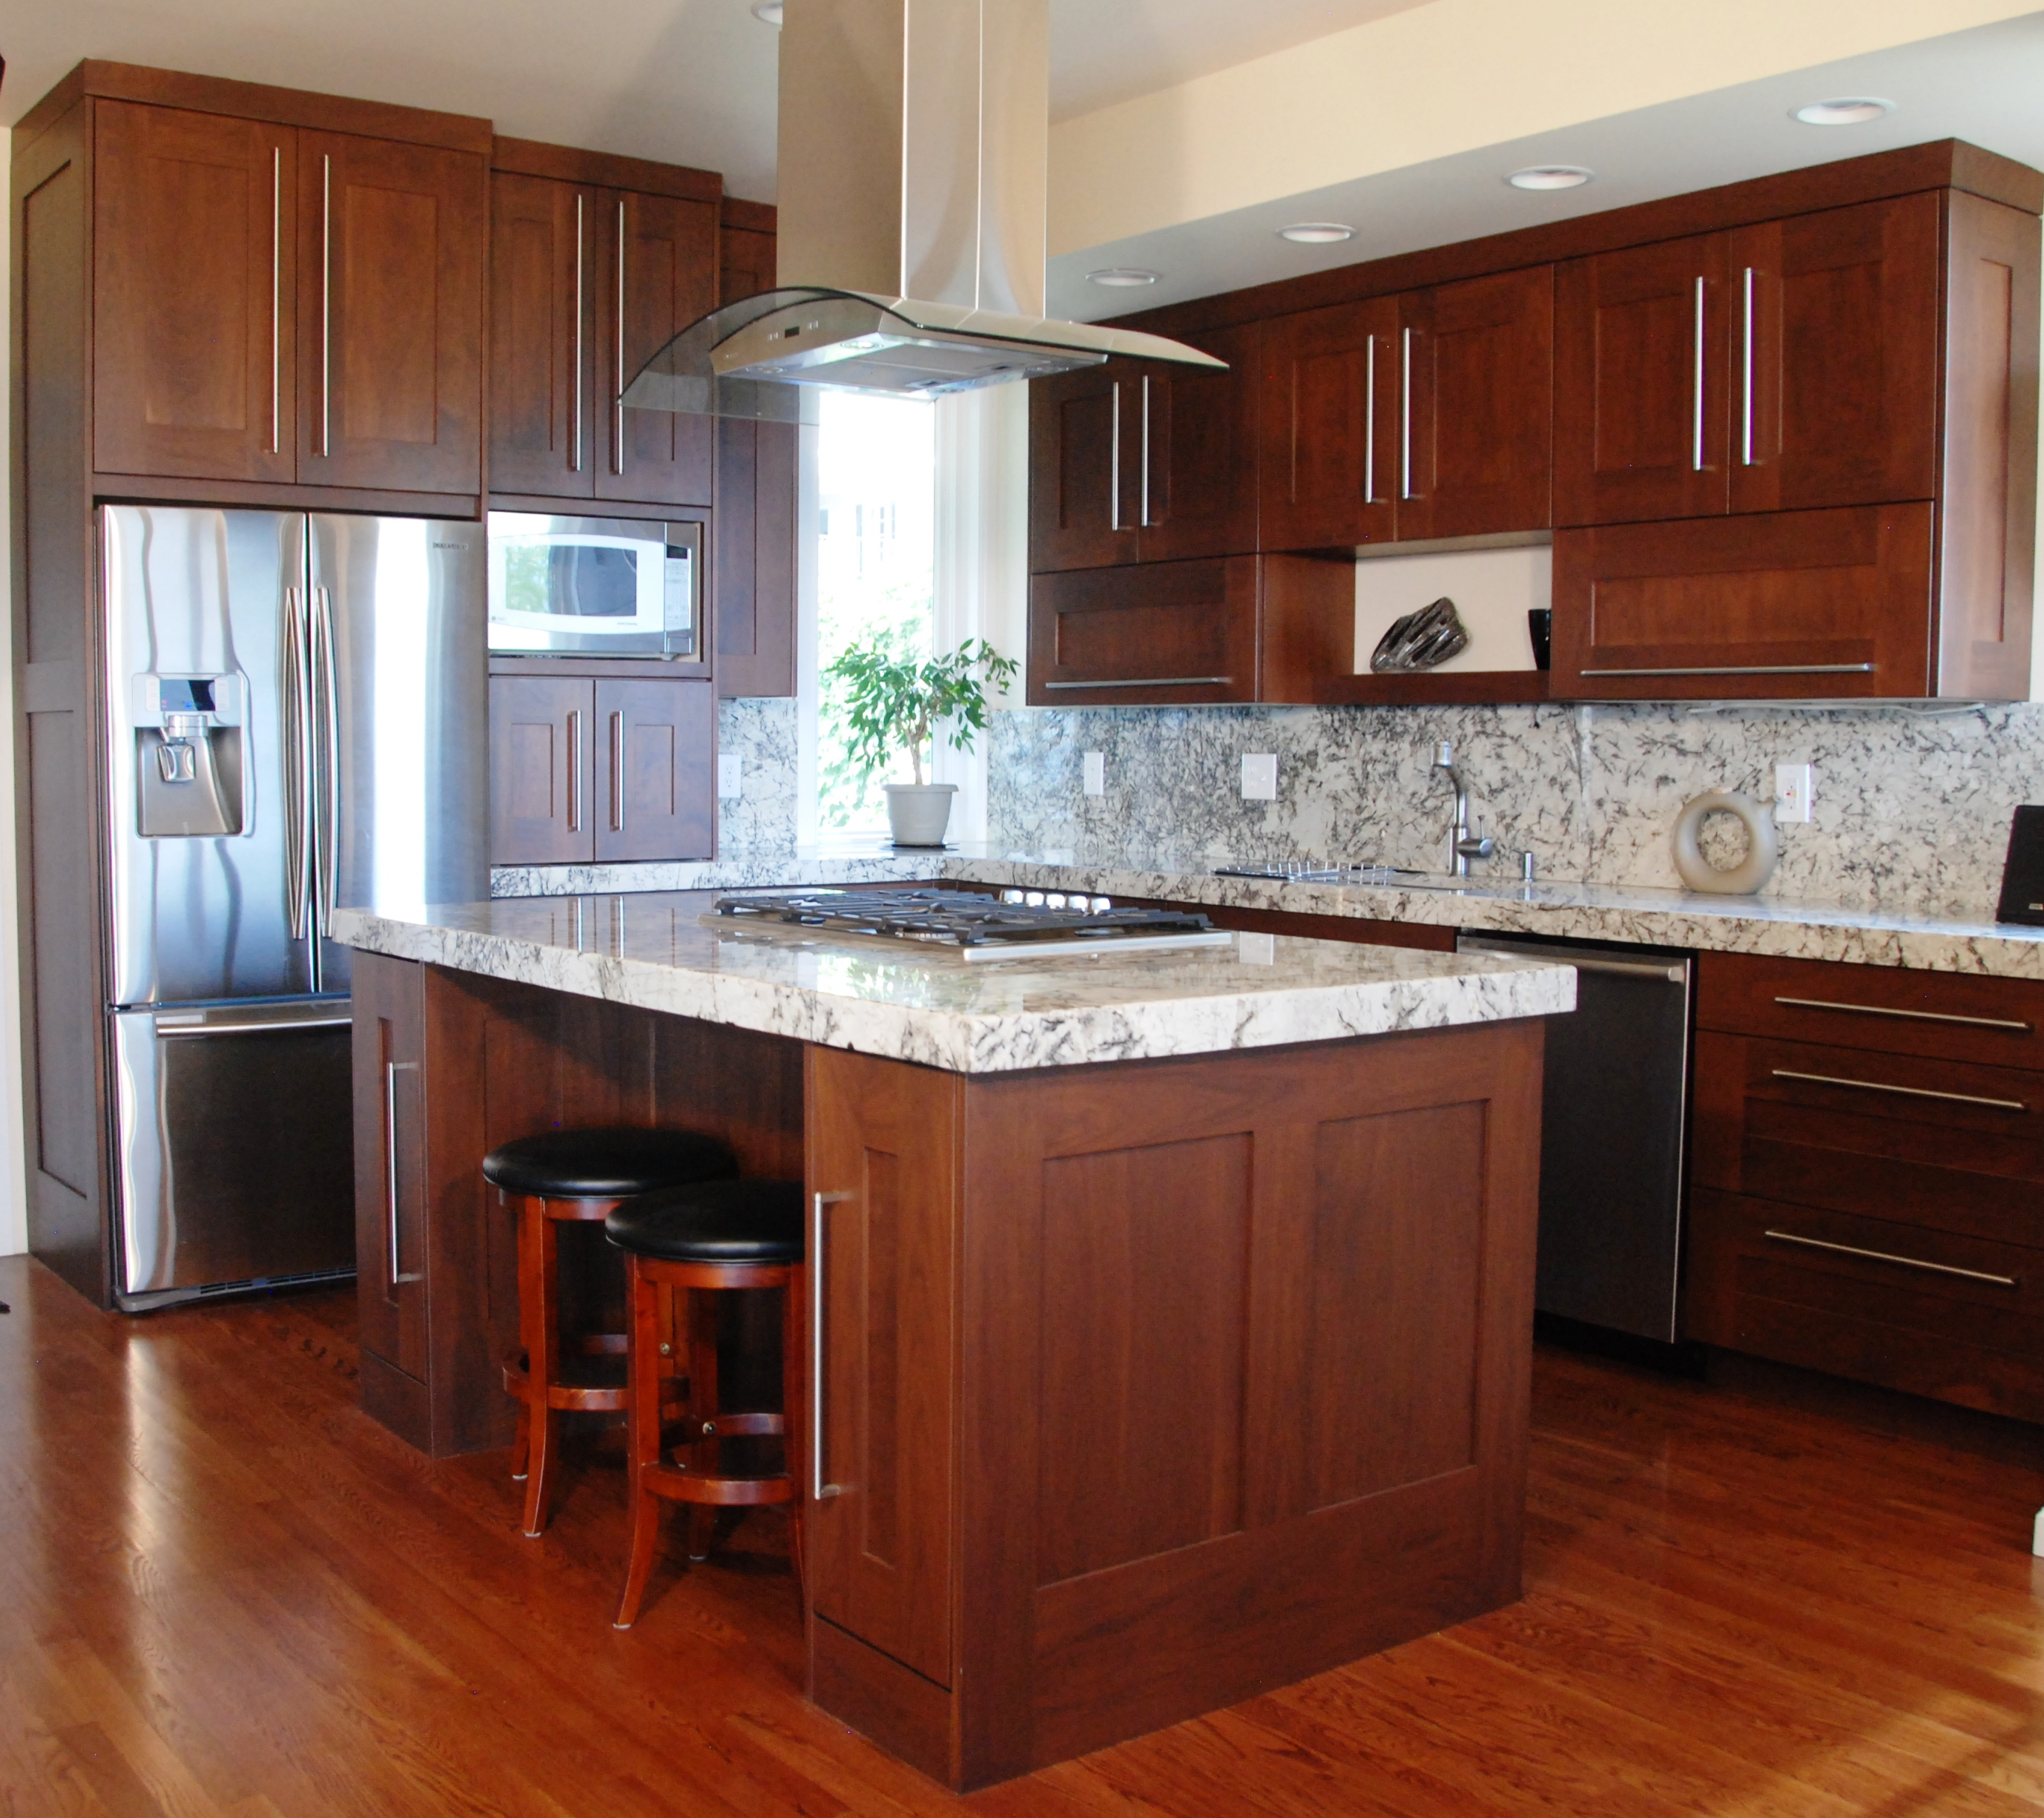 Contemporary Kitchen Cabinetry Pictures Steves Cabinetry Blog - Shaker style furniture for your kitchen cabinets